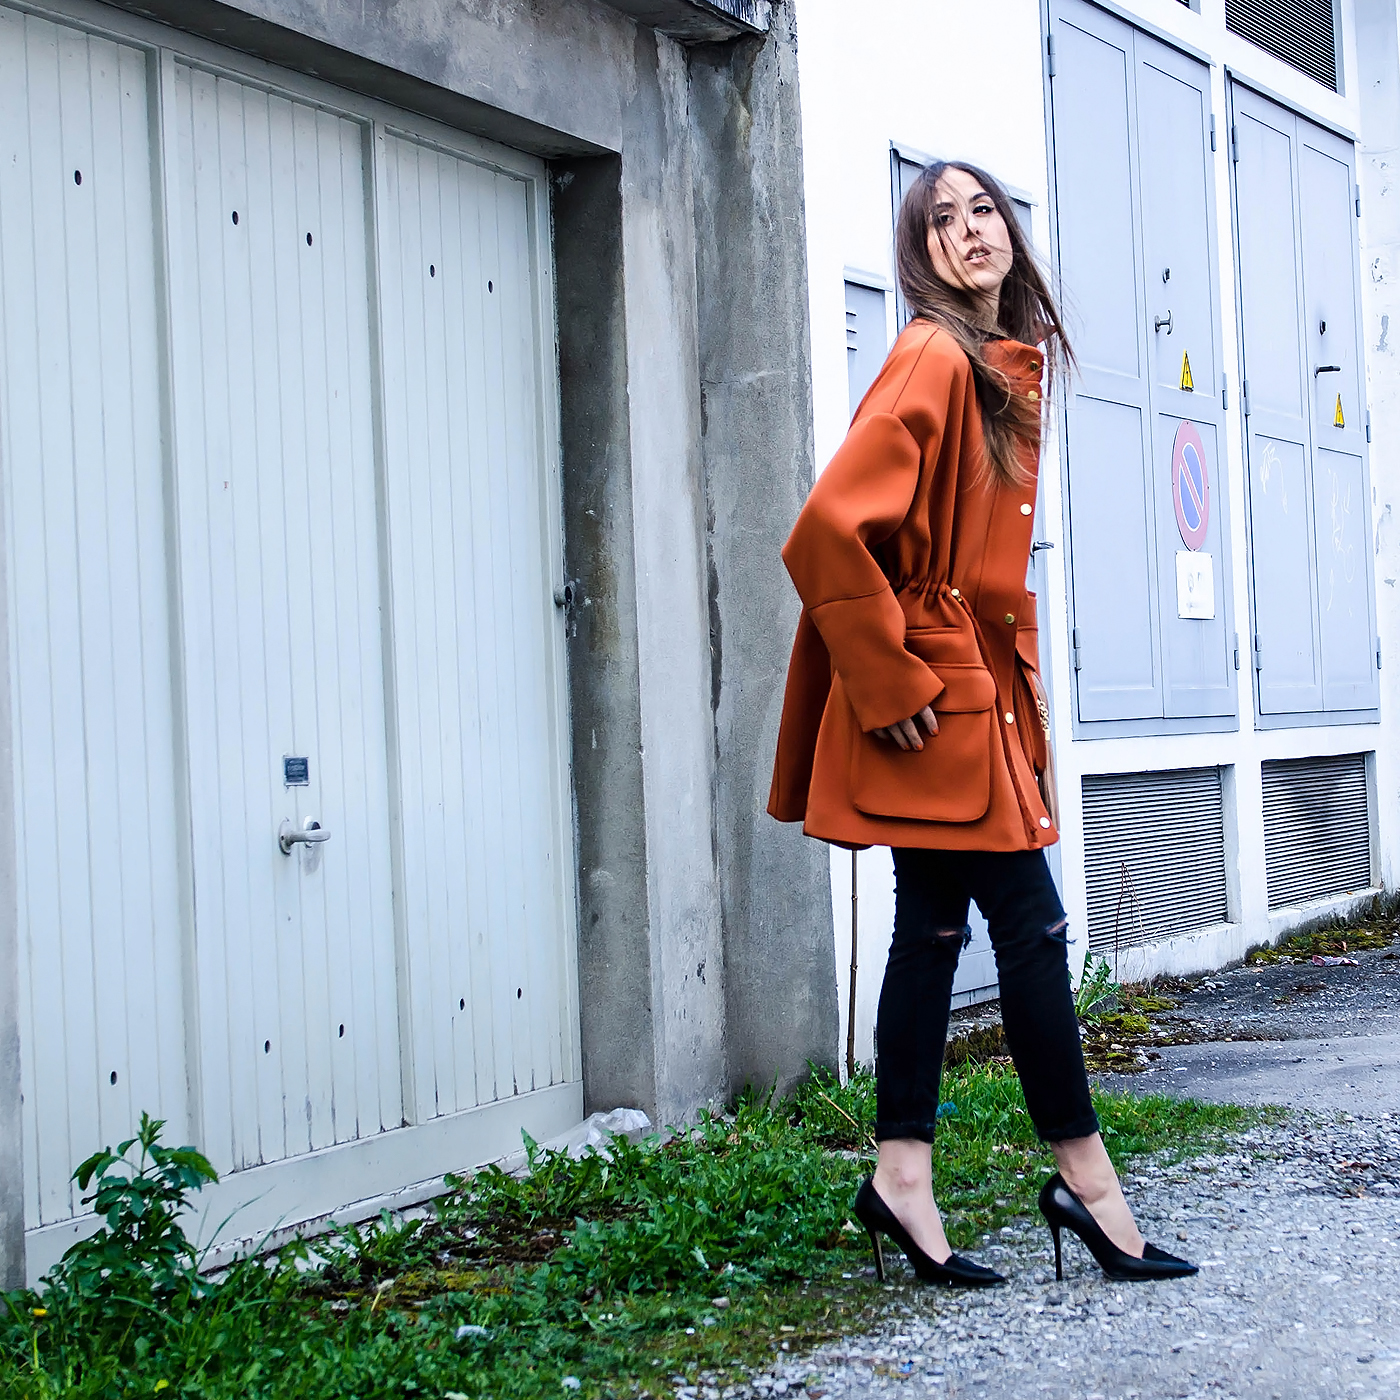 alison liaudat, blog mode suisse, swiss fashion blogger, fashion blog switzerland, filini necklace, statement necklace, H&M trend collection, orange make up, ss15 trend, Schweizer bloggerin,